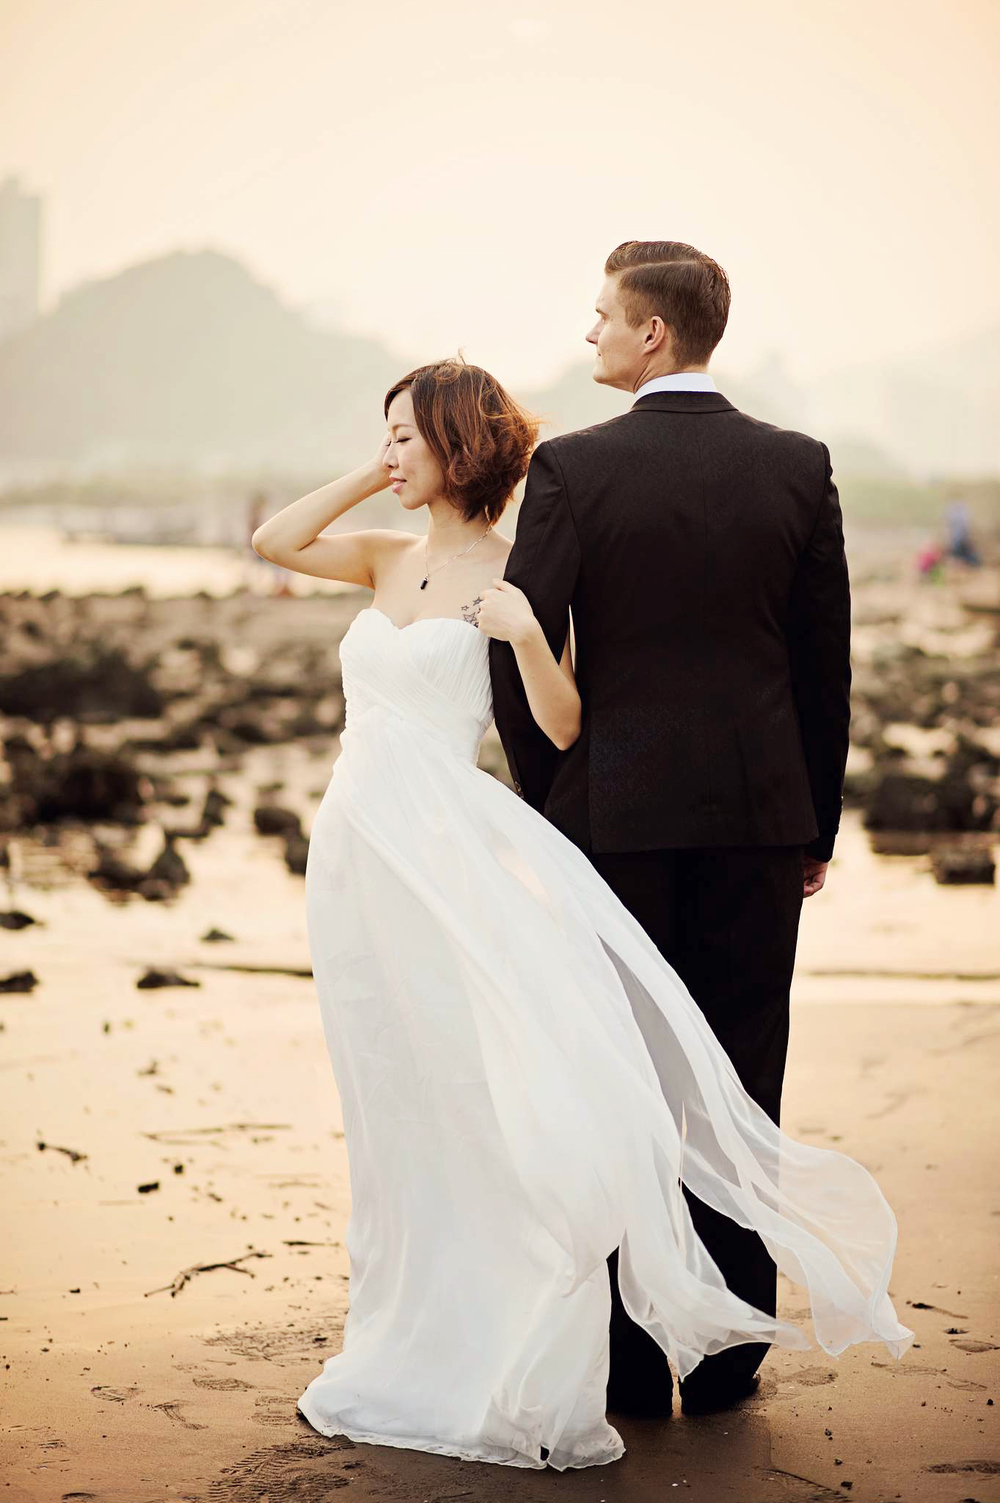 Chris_Hui_ShenZhen_Prewedding_Photography222.jpg